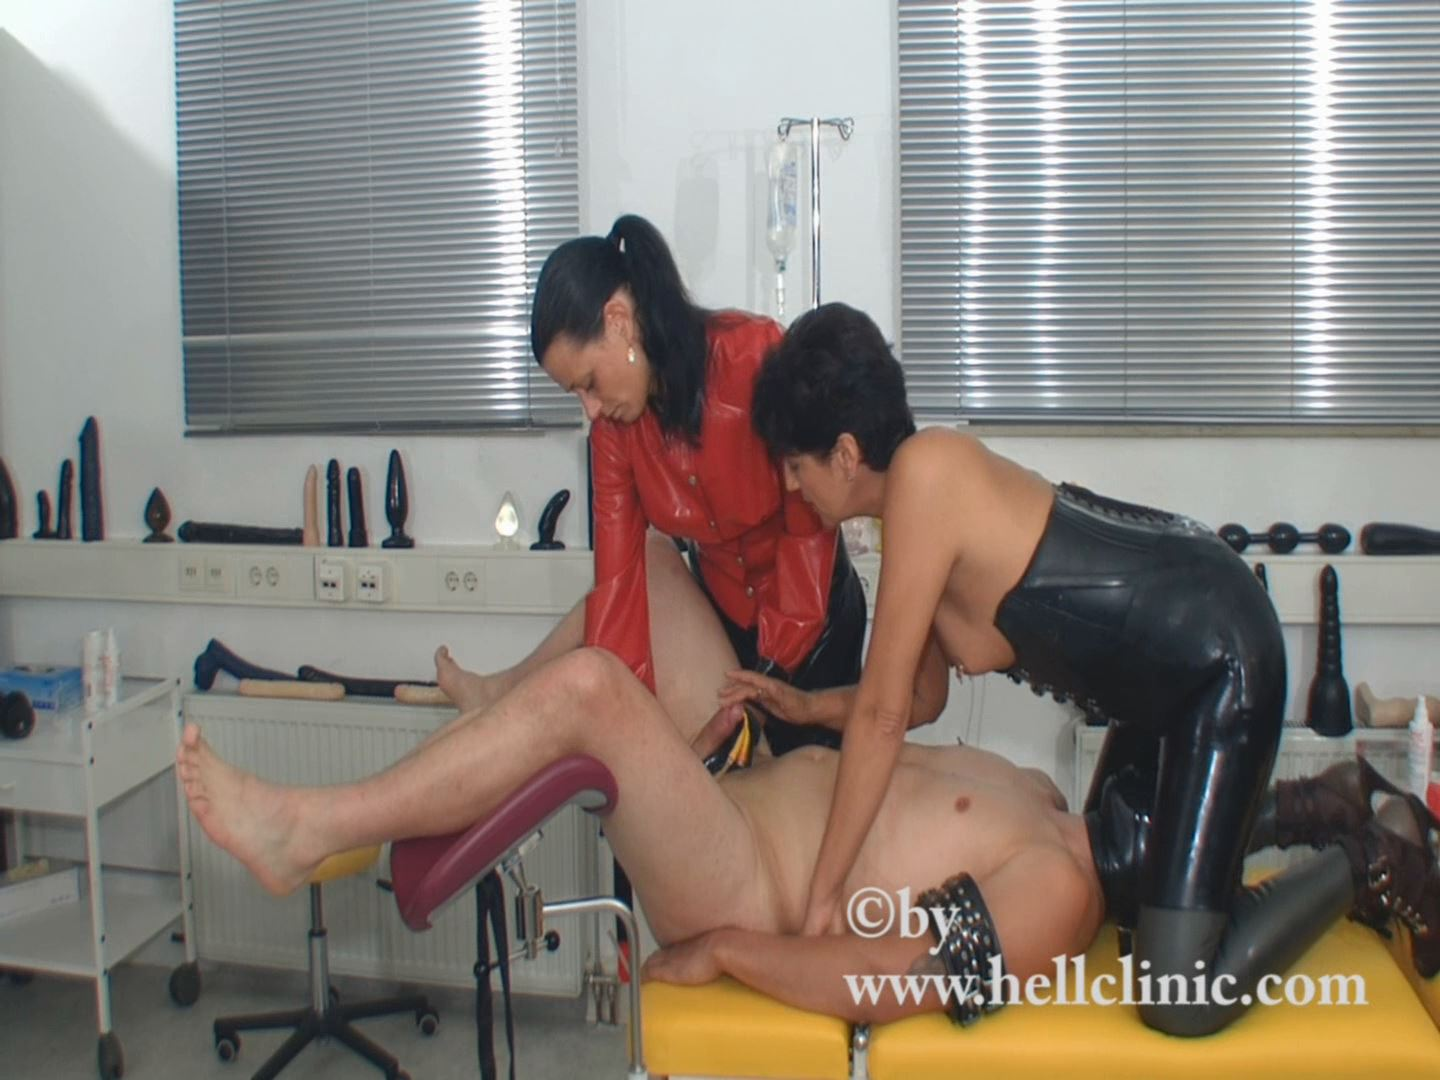 [SPEKULA] Catheter slave [FULL HD][1080p][MP4]